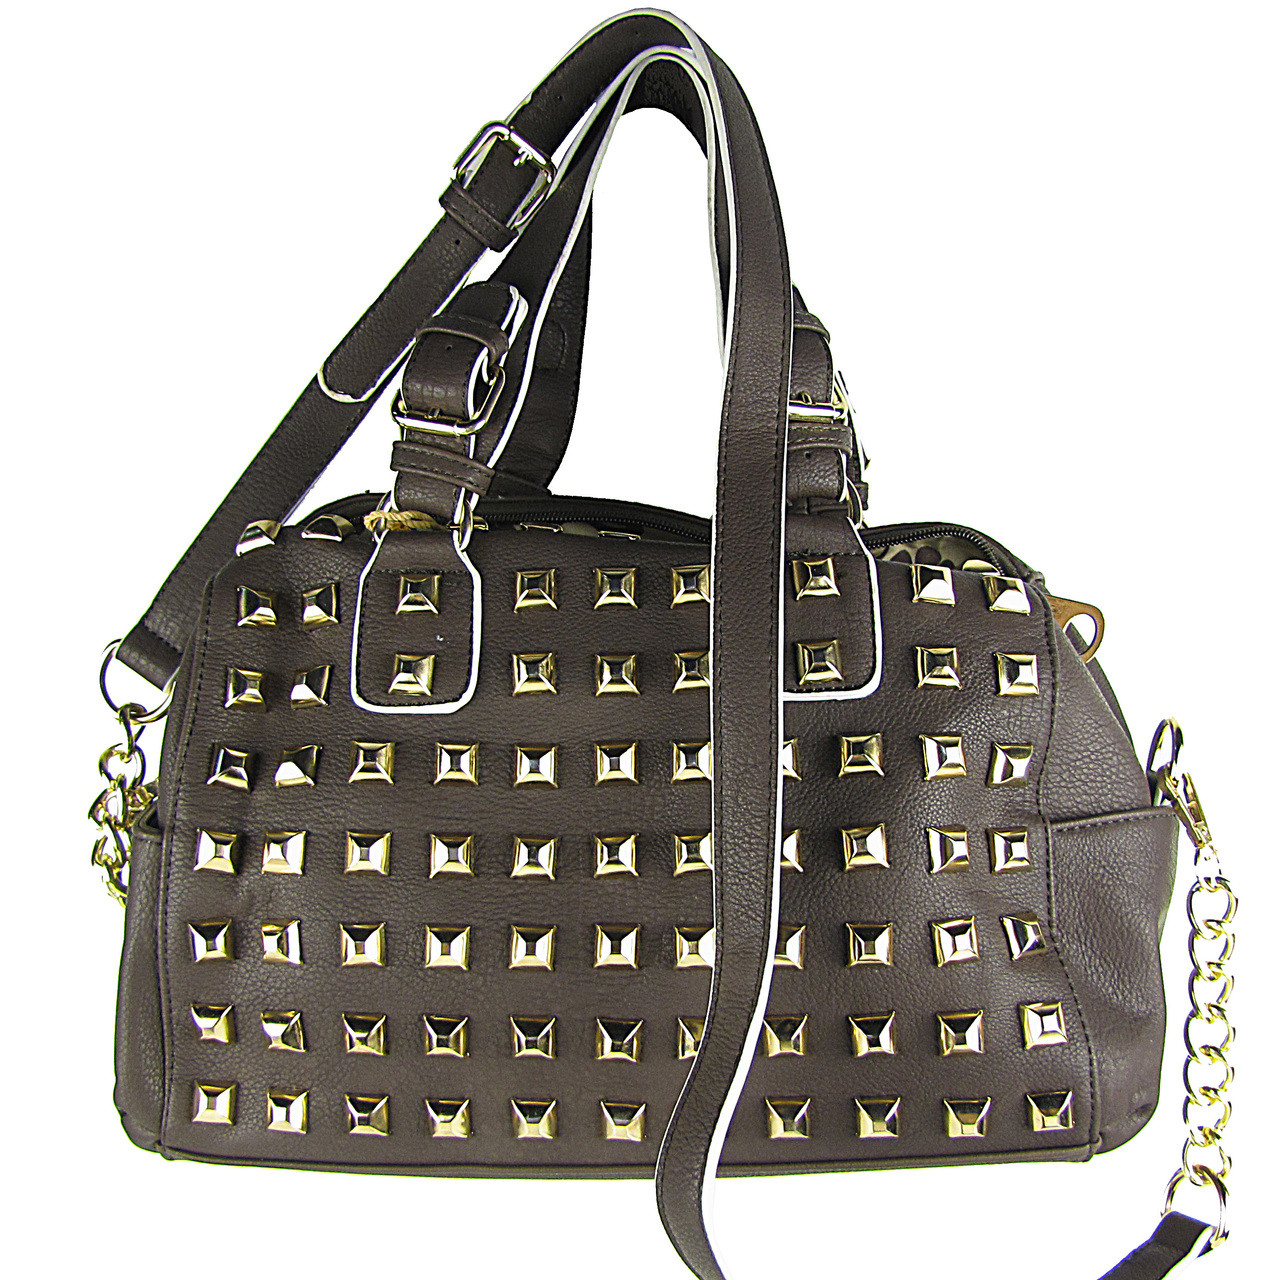 BROWN STUDDED LEATHERETTE LOOK SHOULDER HANDBAG HB1-HC0079BRN